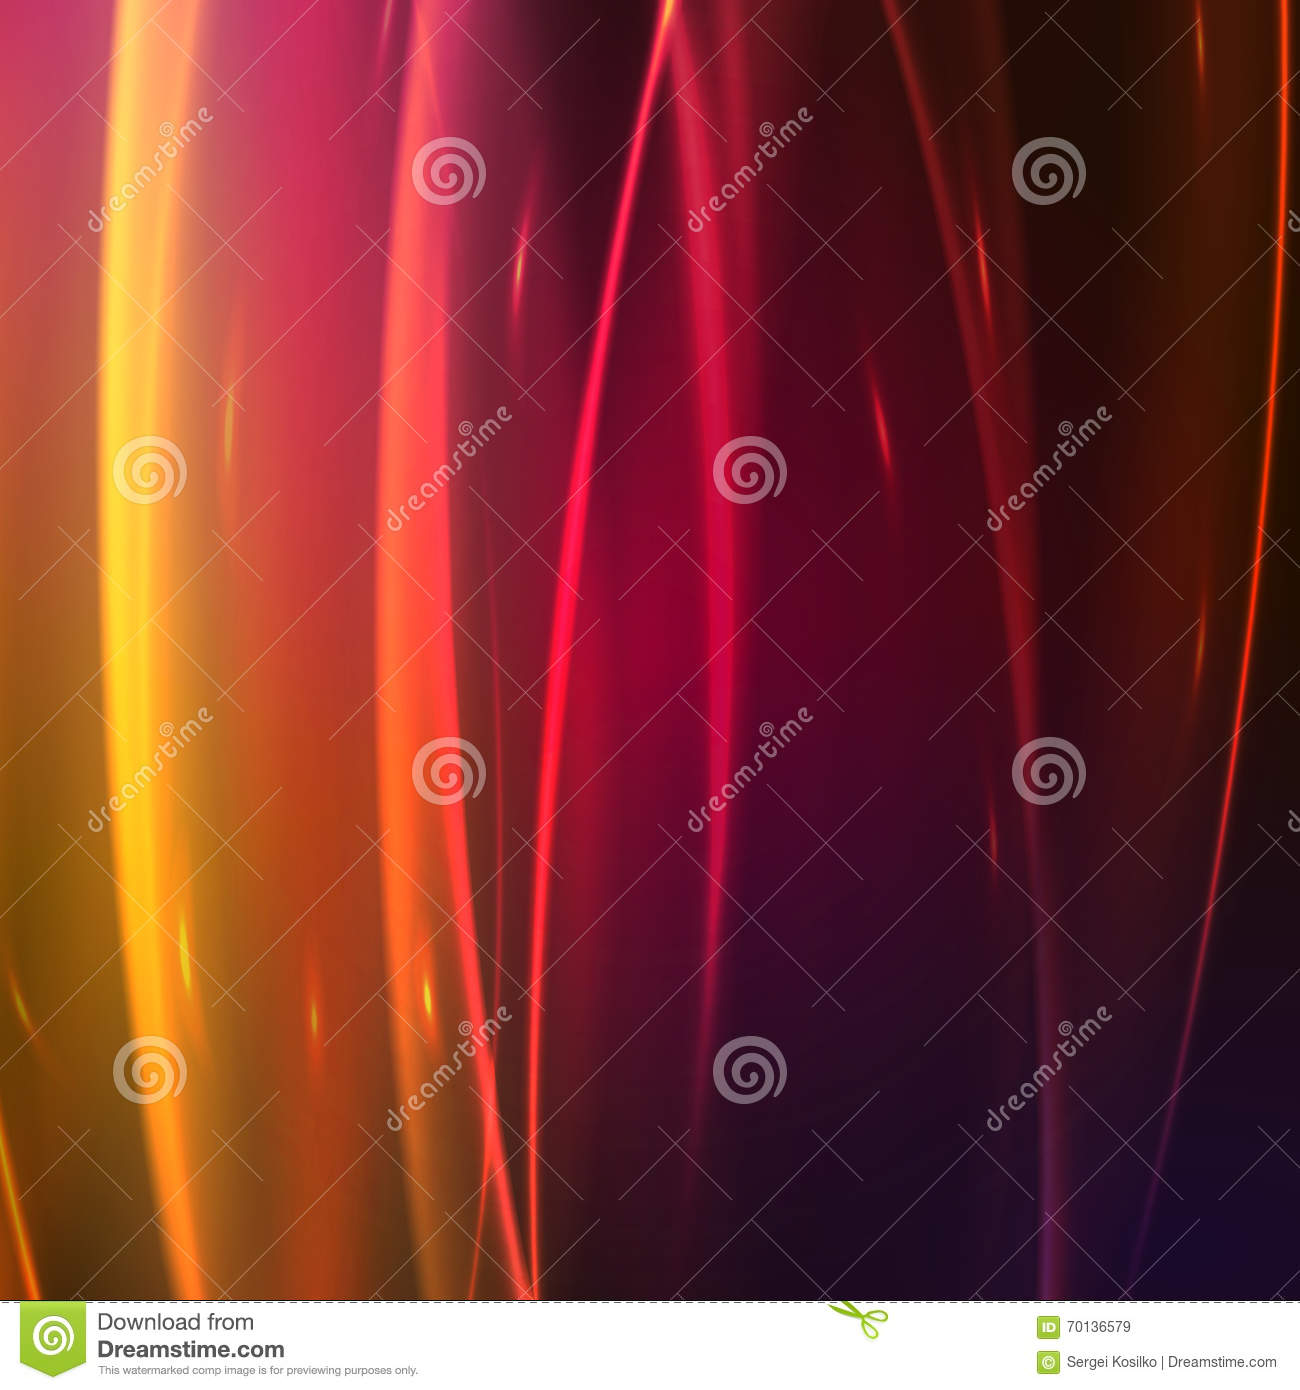 Abstract background with glow effect, vector